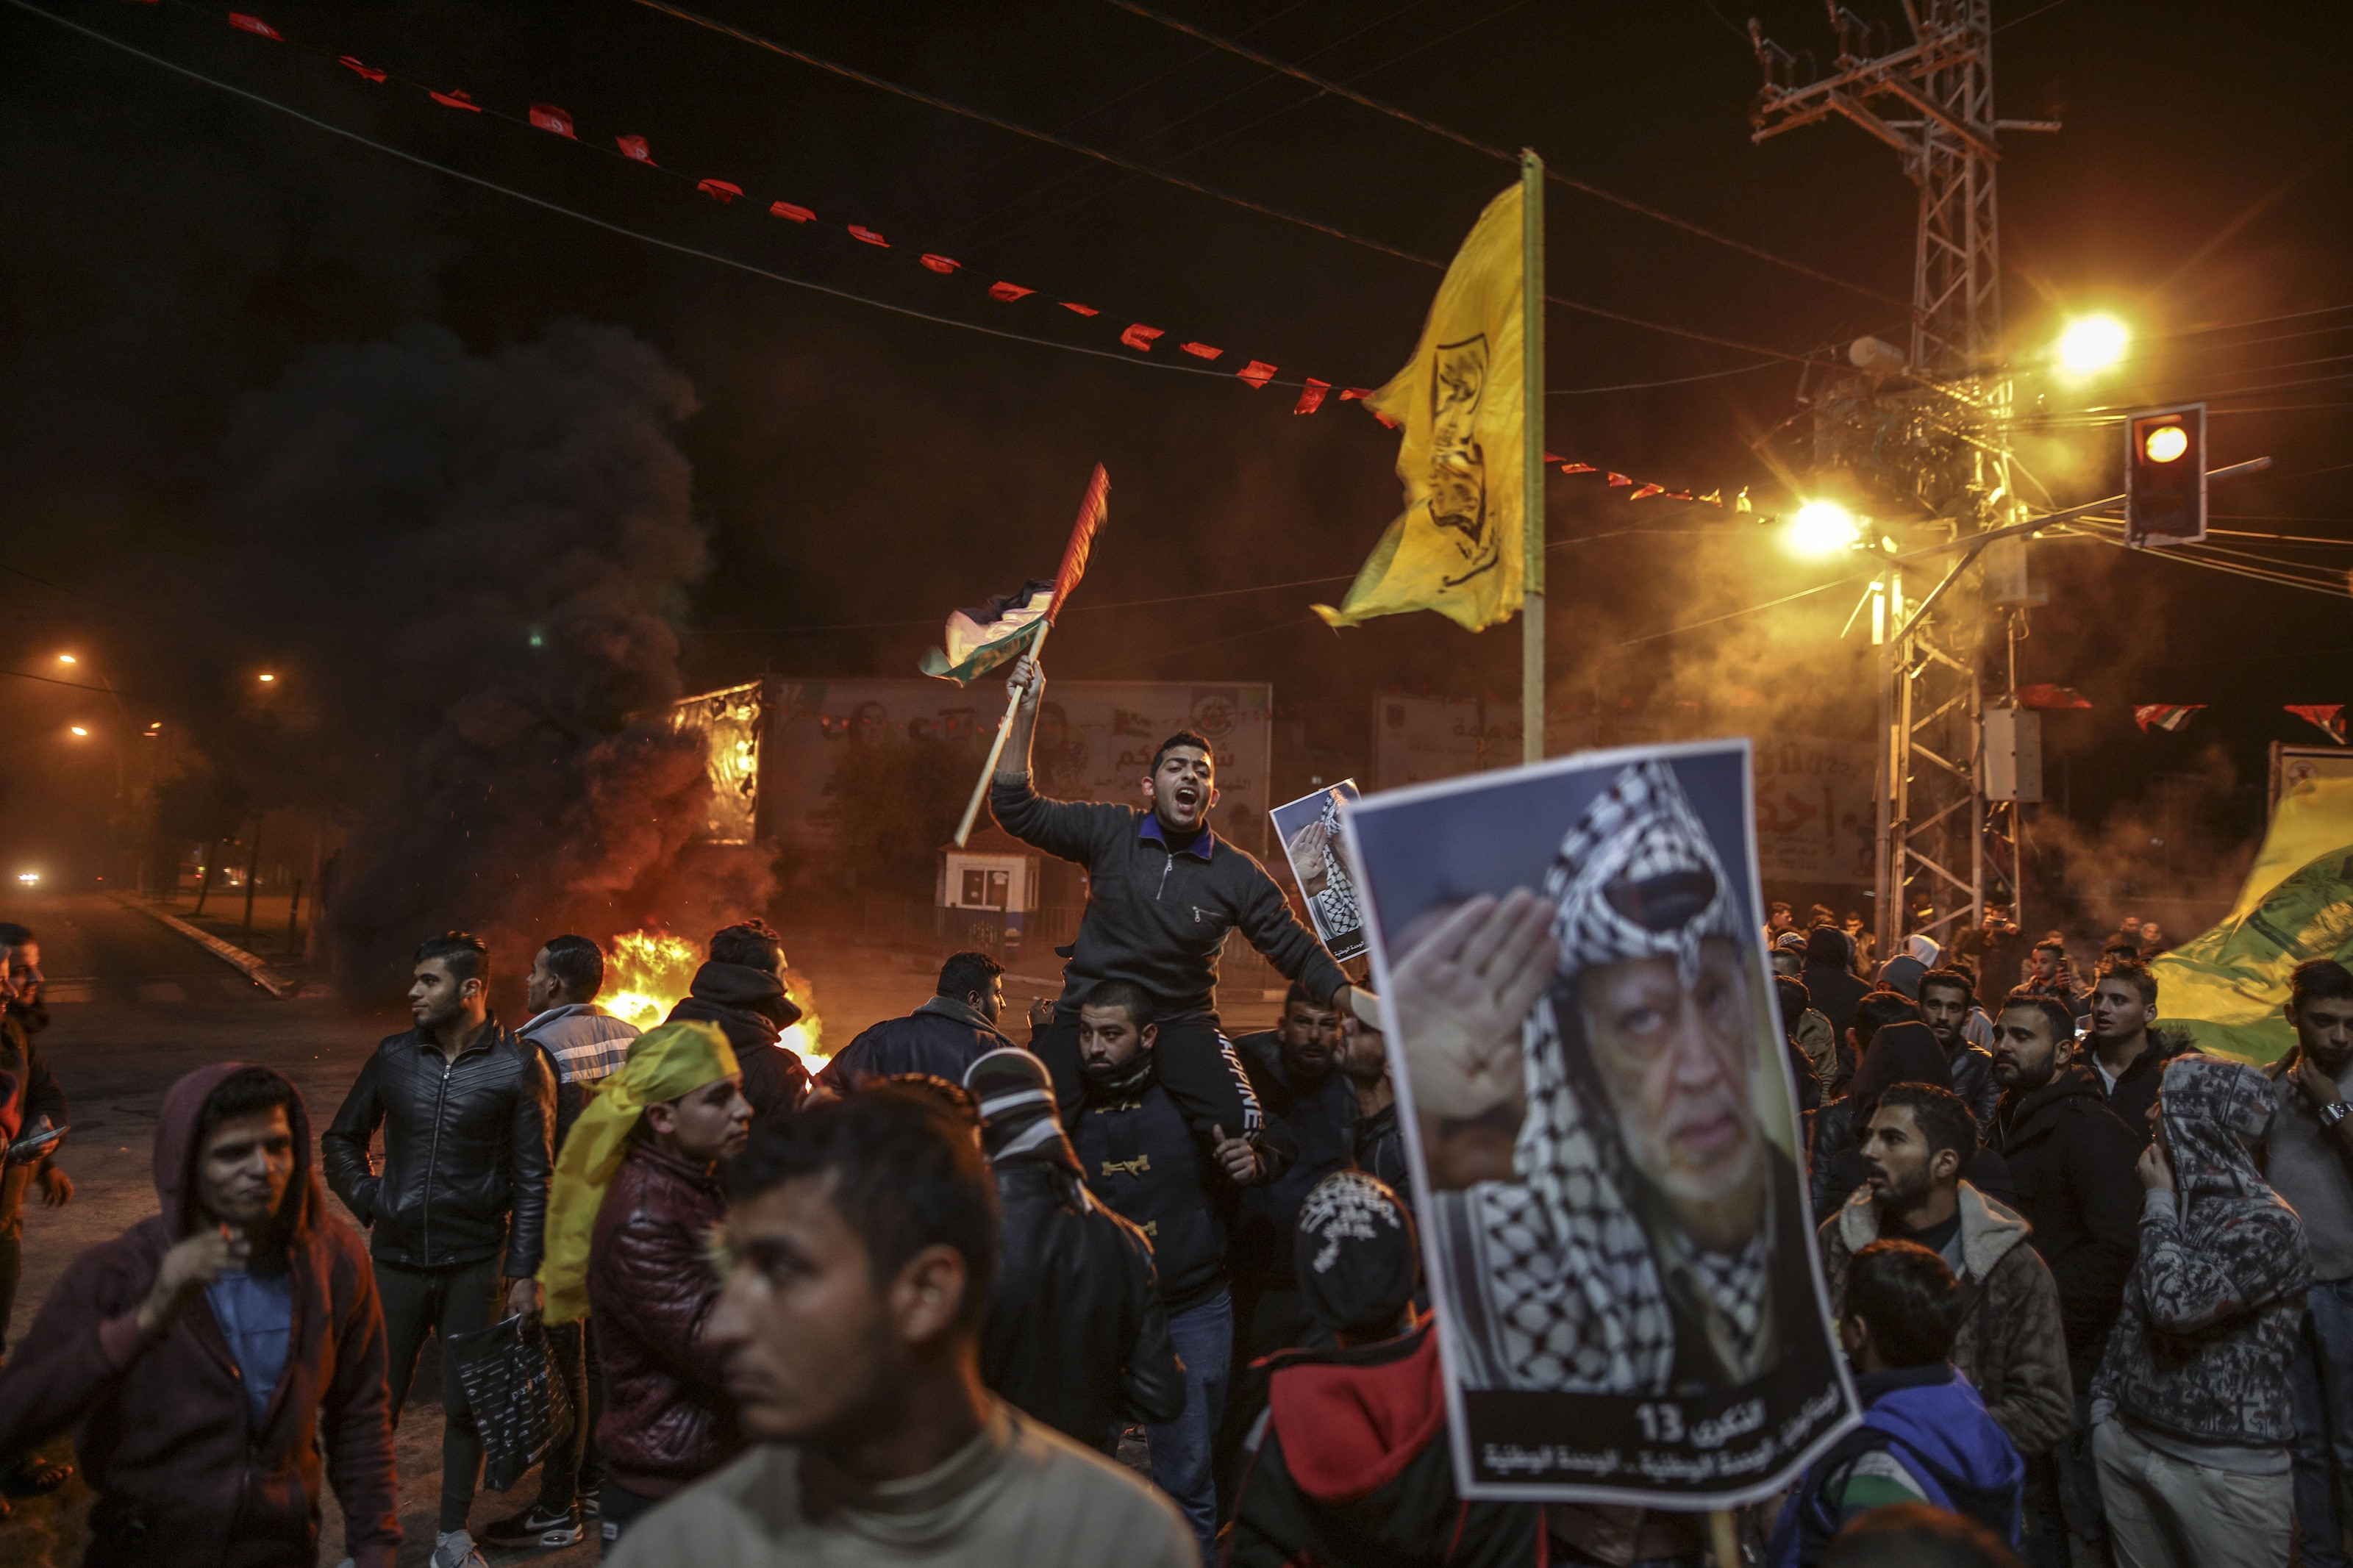 Demonstrators burn tyres, shout slogans and hold the posters of Palestinian leader Yasser Arafat during a protest against the US President Donald Trump's recognition of Jerusalem as Israel's capital, in Gaza City, Gaza on Dec. 07, 2017.